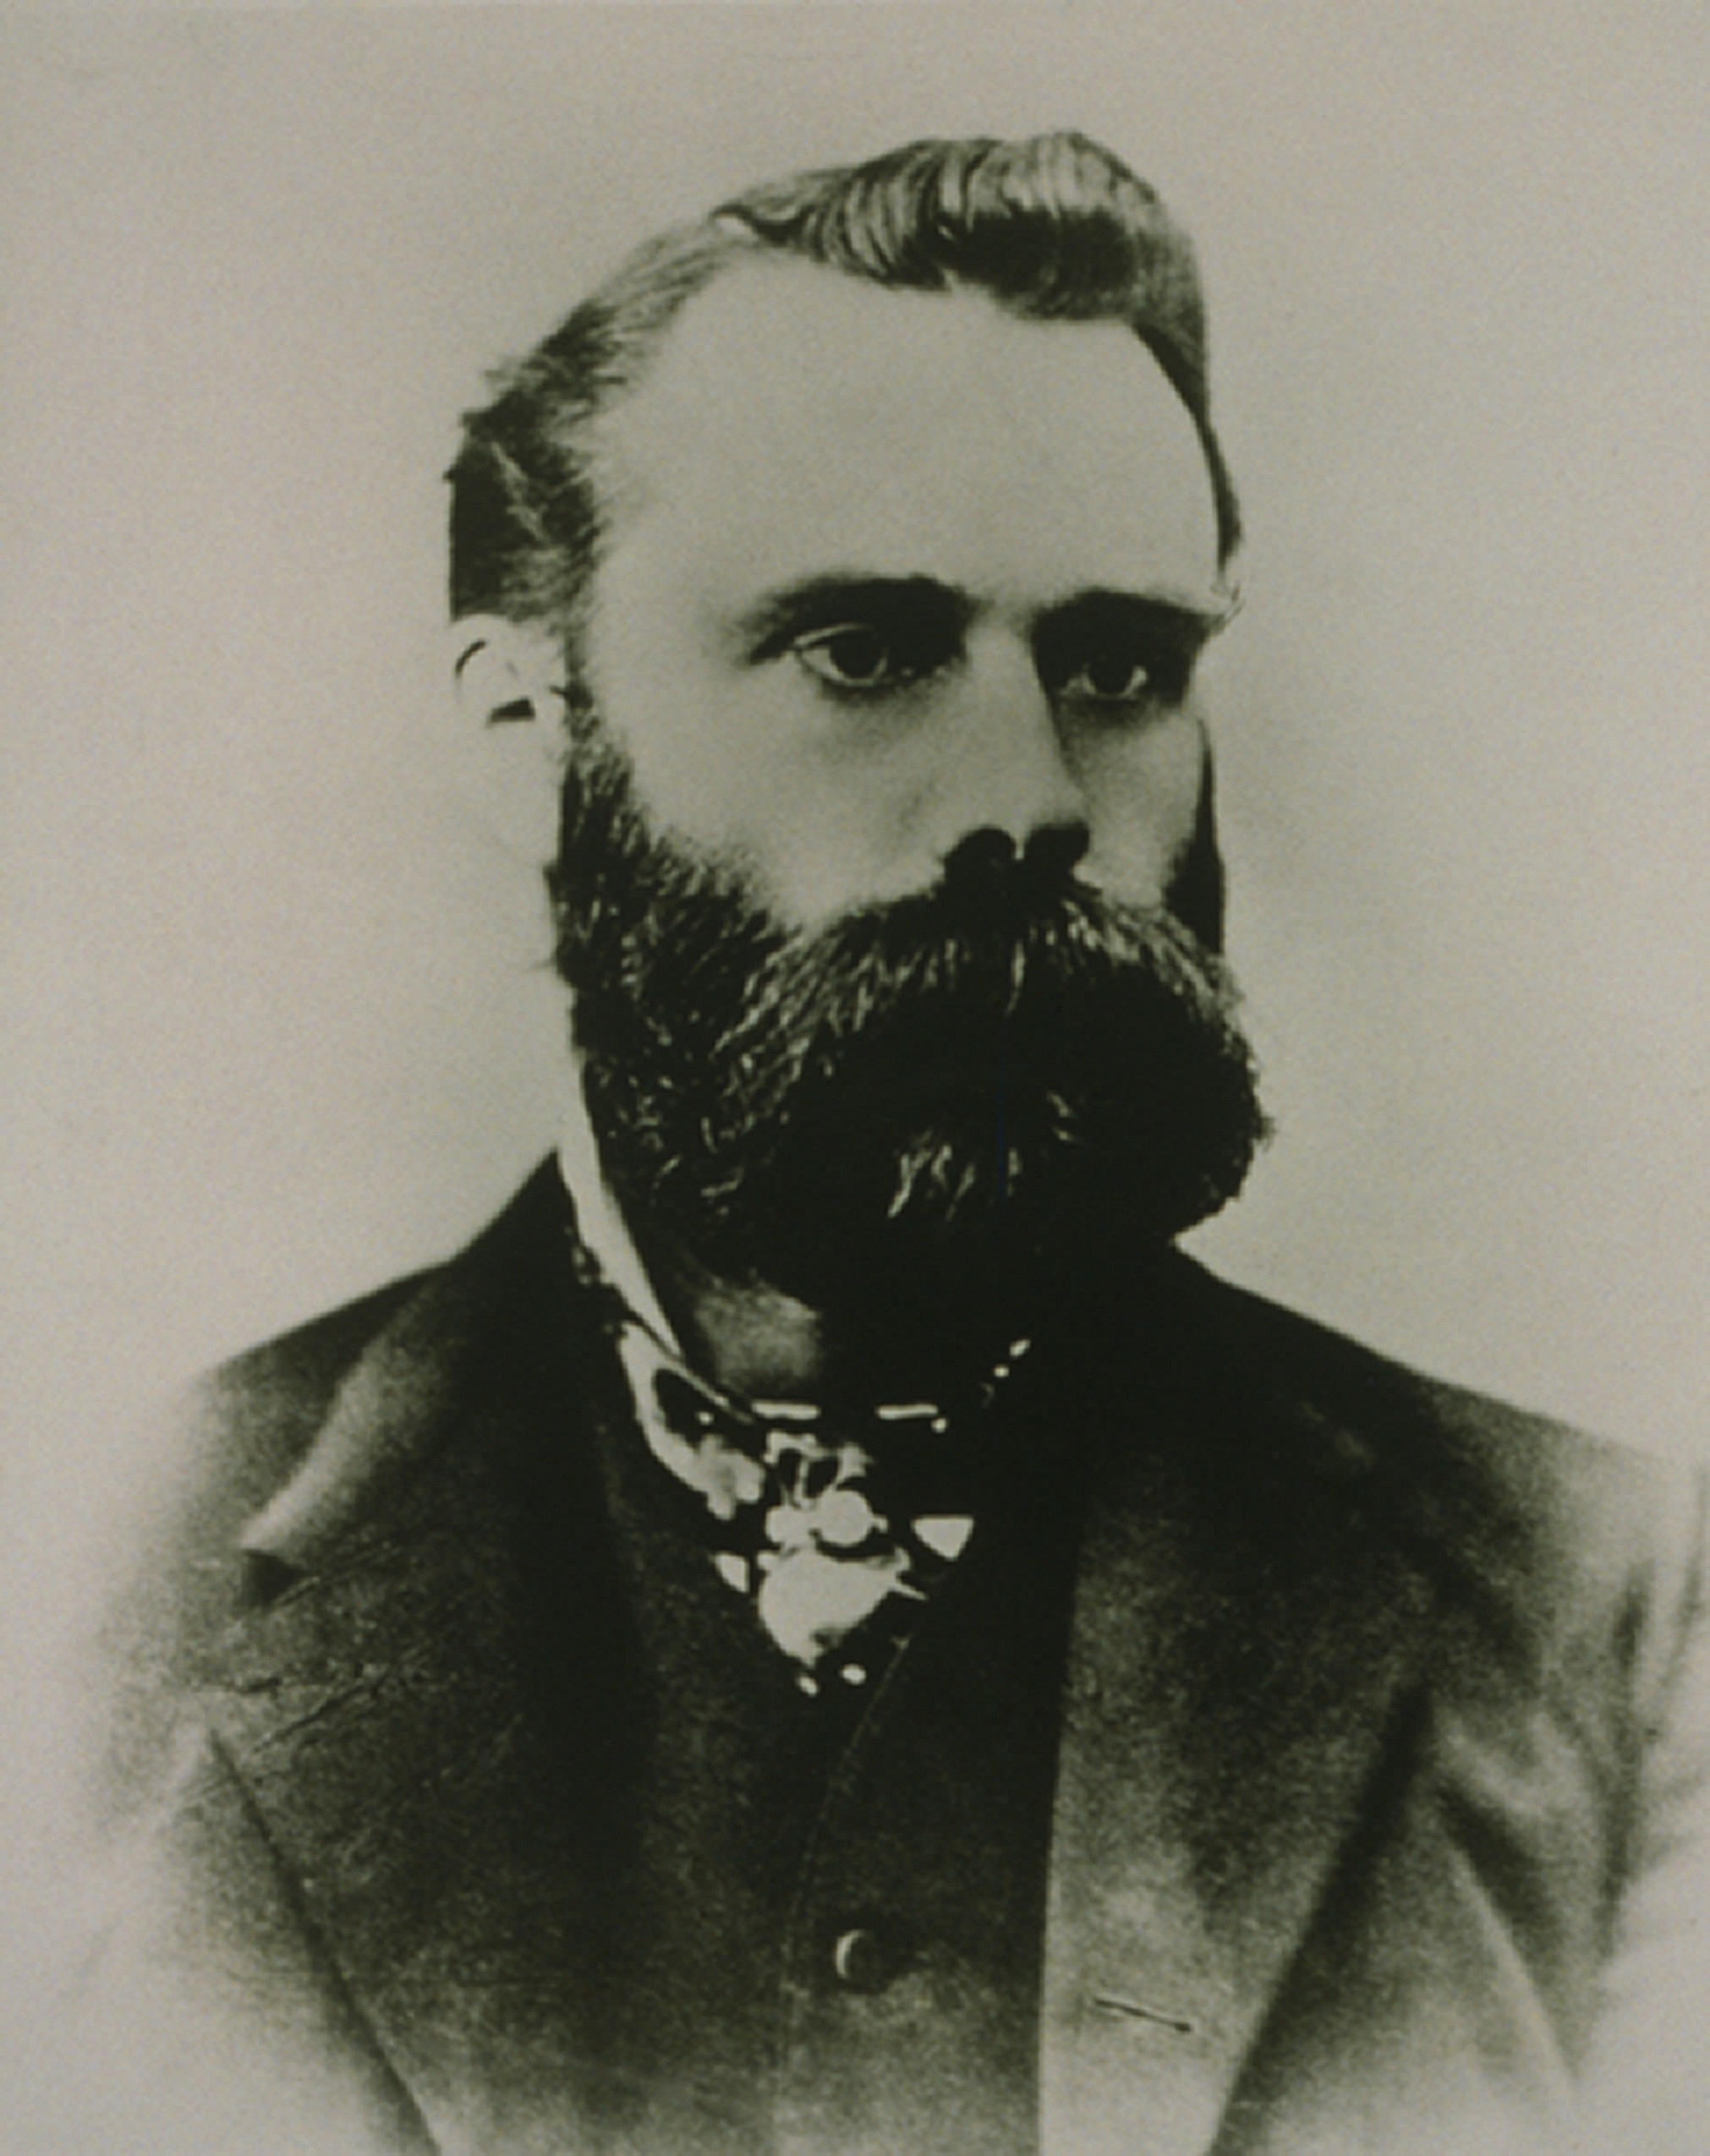 Charles H. Dow (1851-1902), a founder of Dow Jones & Co. who invented the famous Dow Jones Industrial Average in 1896. While also named after his partner, Edward Jones, Dow was the index's sole creator. Ca. 1900